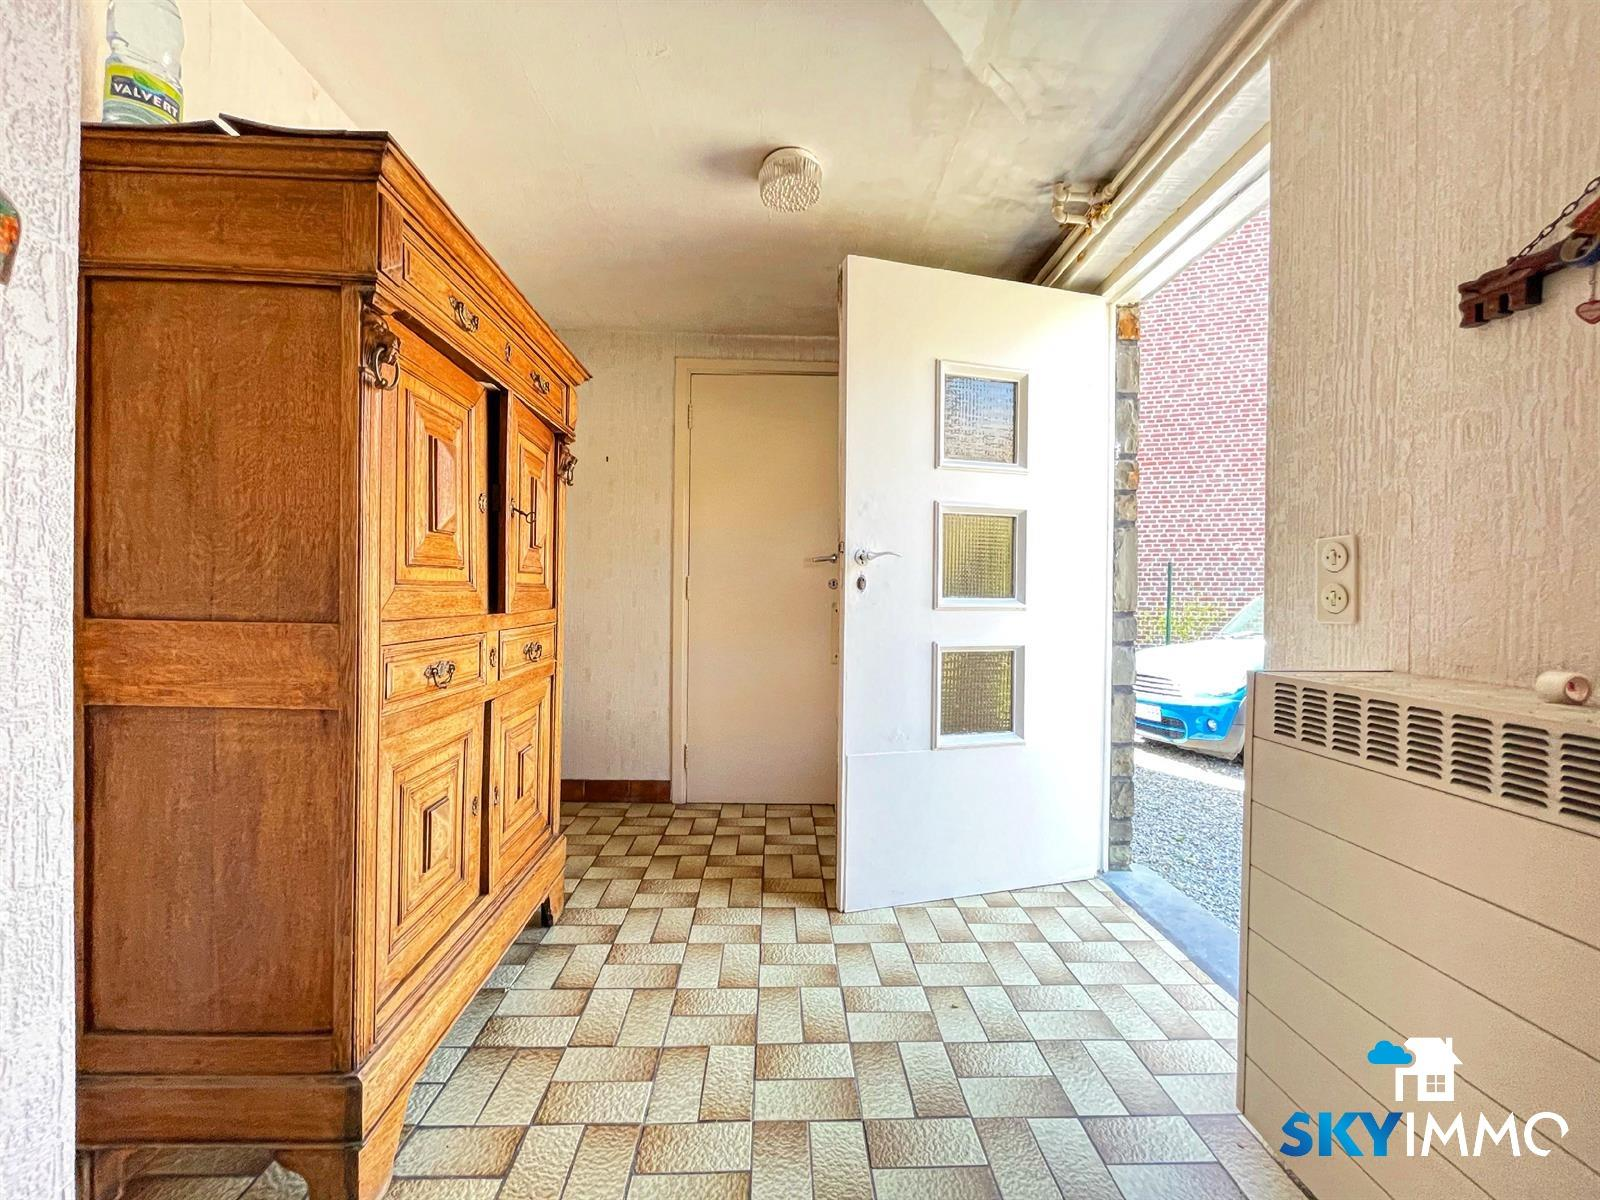 Huis - Flemalle - #4346611-2